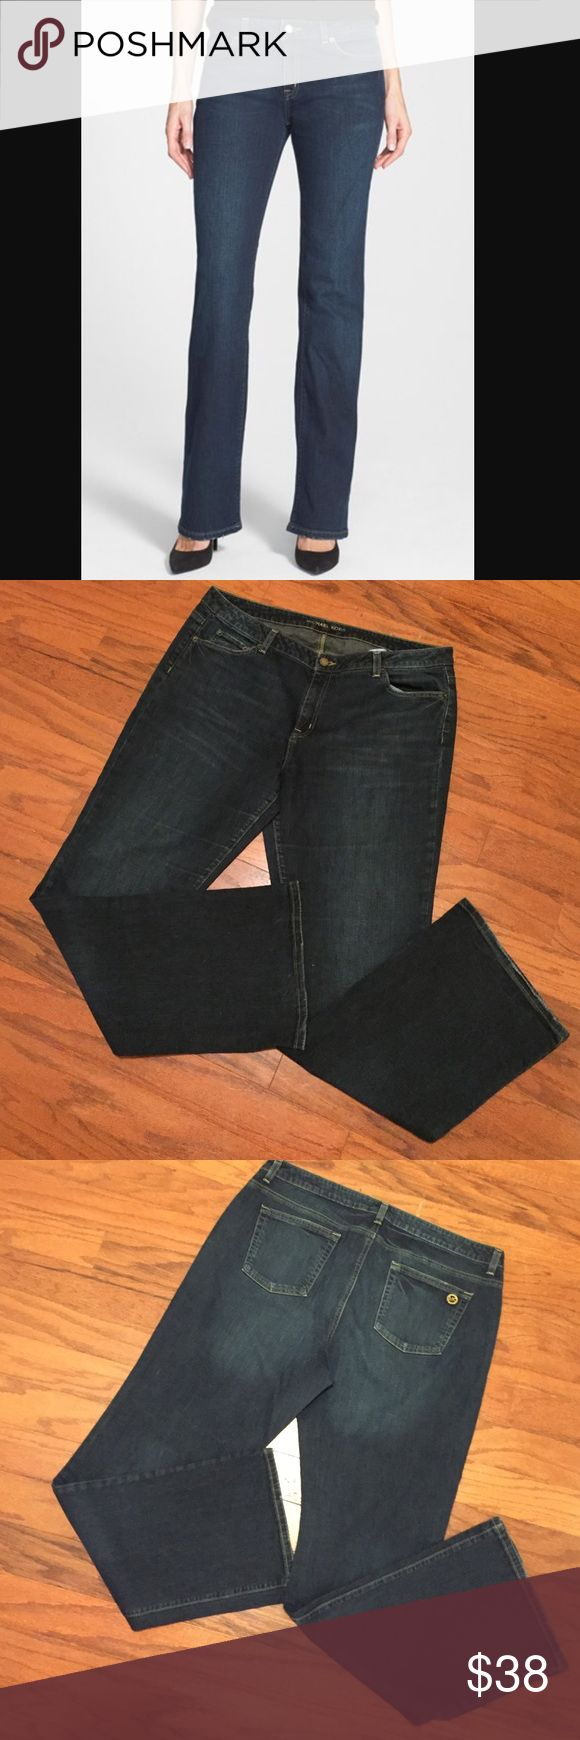 Michael Kors Curvy Bootcut Jeans Excellent quality and condition. Deep indigo wash. Michael Kors insignia on back pocket. Very flattering! Very little wear. Michael Kors Jeans Boot Cut